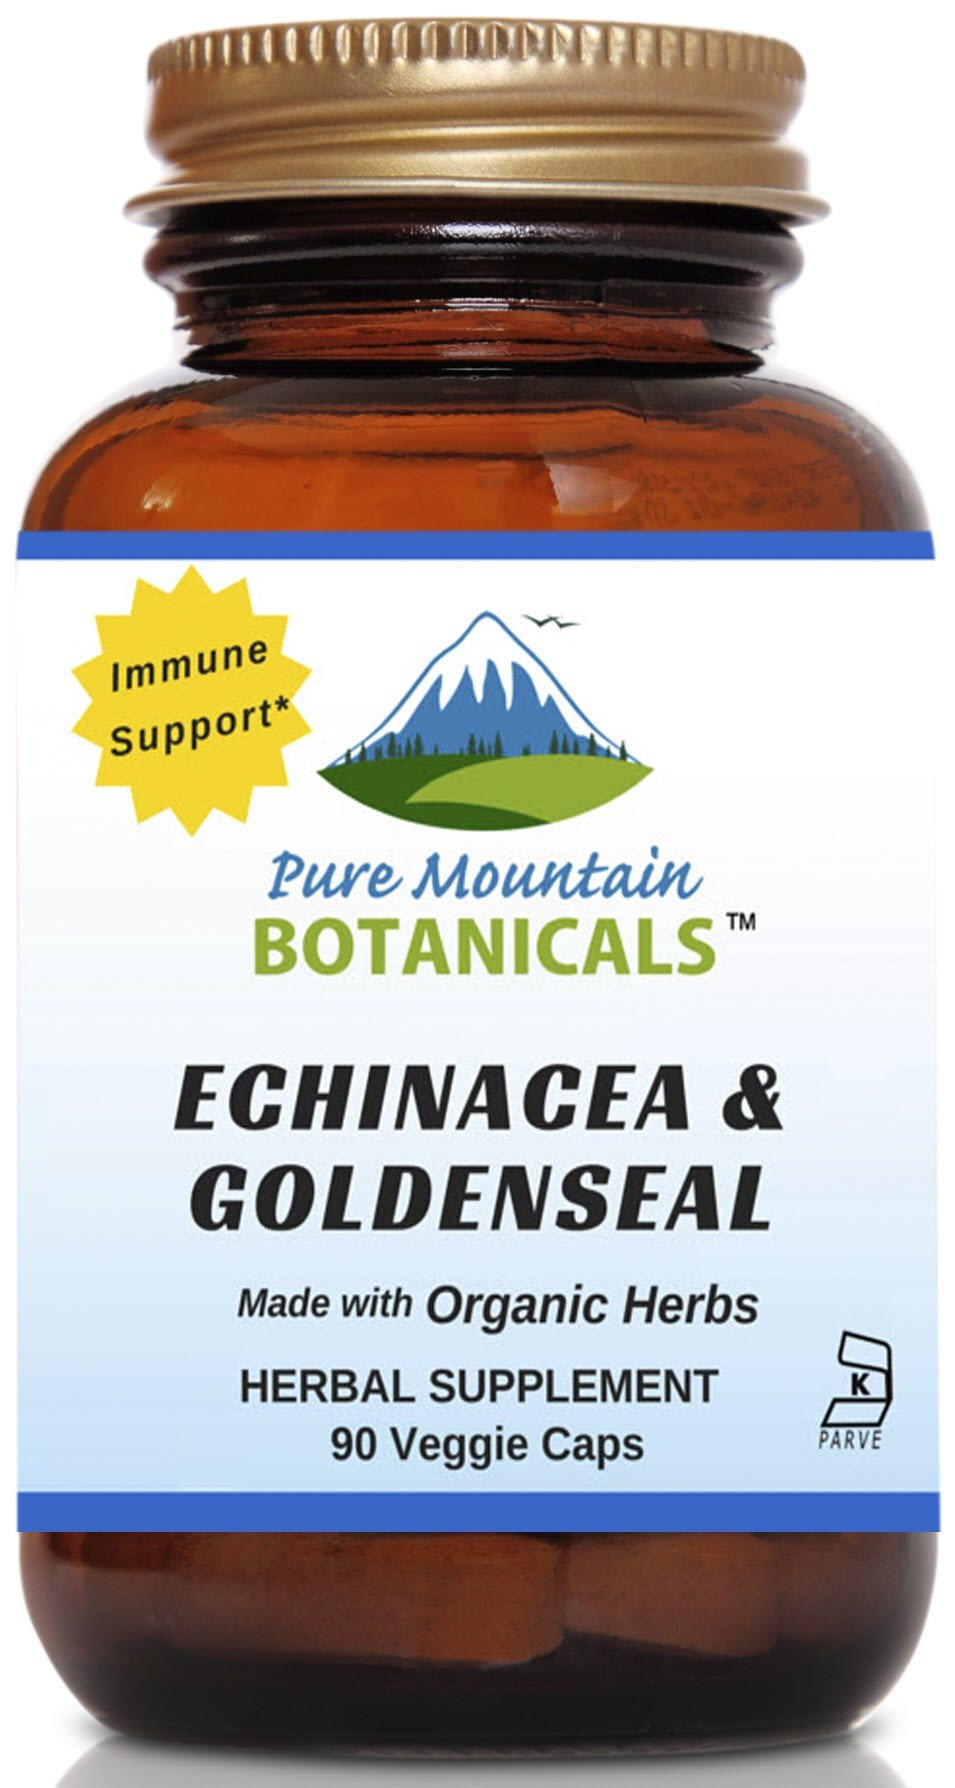 Echinacea Goldenseal Capsules - 90 Kosher Vegetarian Caps - Now with 450mg Organic Echinacea Goldenseal Complex - Nature's Gold Standard Supplement by Pure Mountain Botanicals